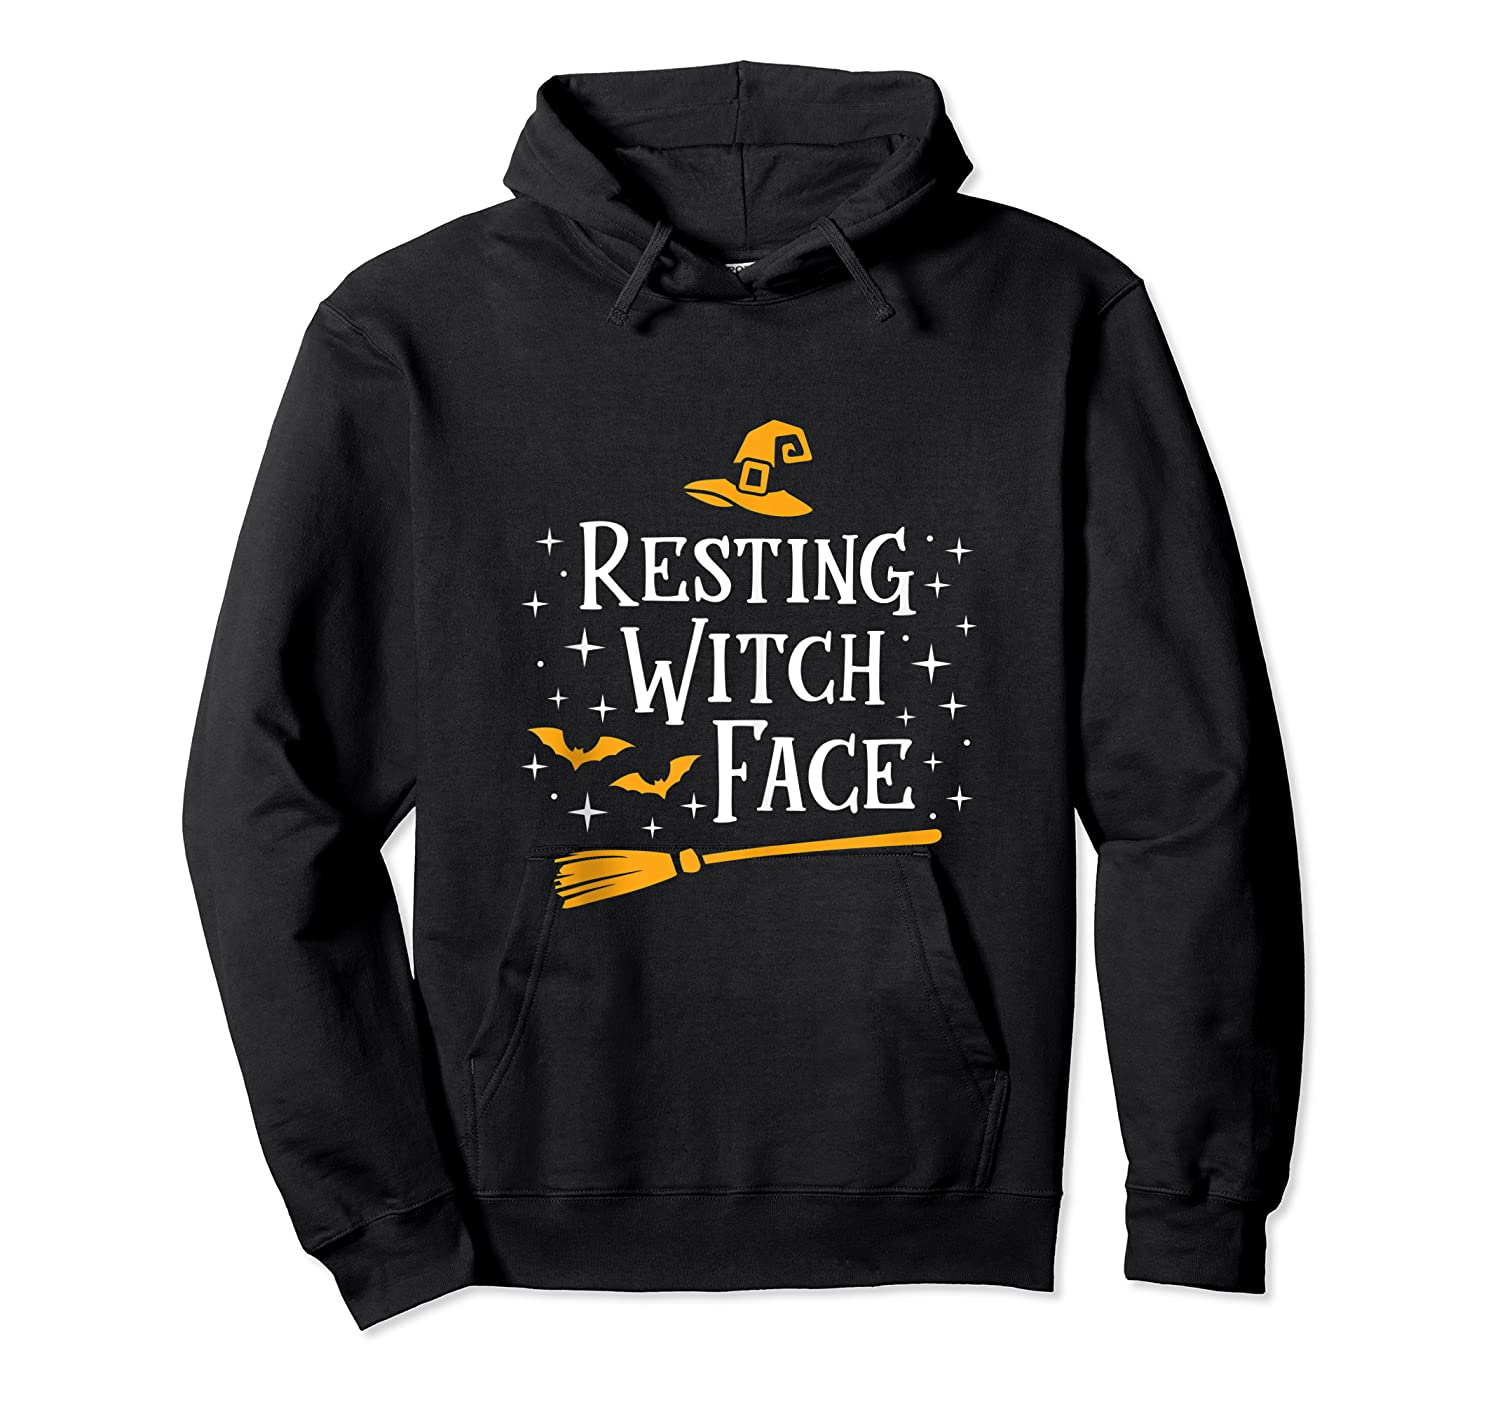 Resting Witch Face Shirt Broomstick Funny Spooky Party Tank Top Unisex Pullover Hoodie